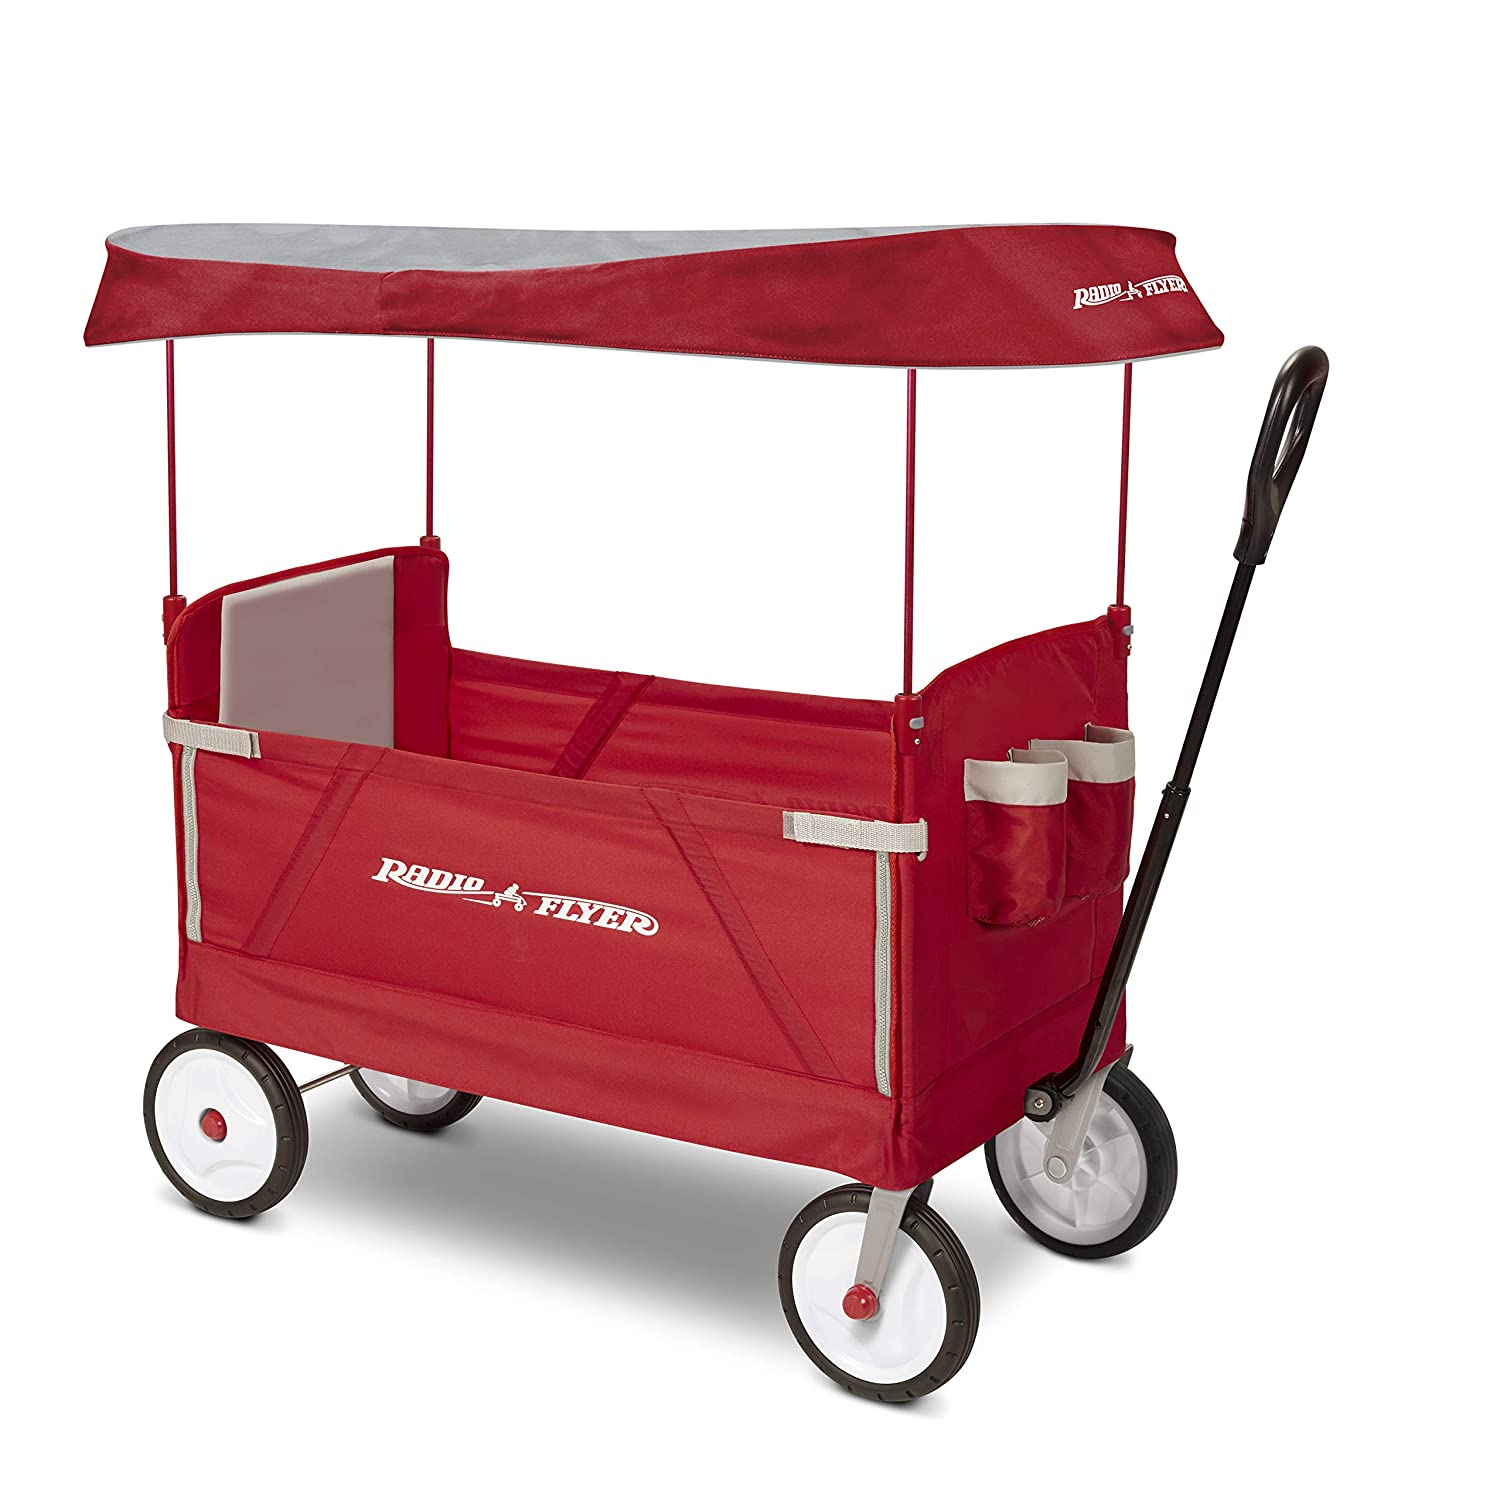 The Best folding wagon for kids - Our pick